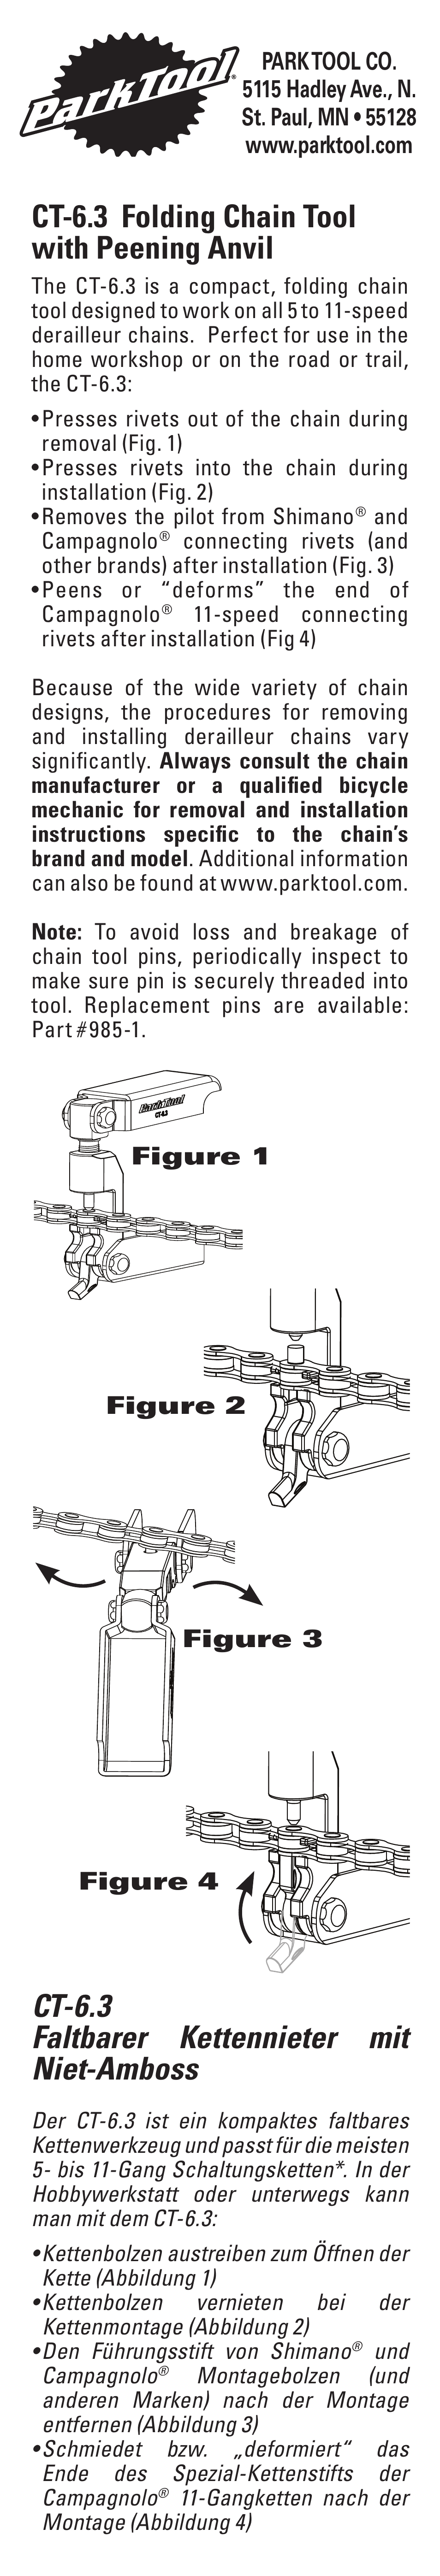 Park Tool Folding Chain Tool with Peening Anvil User Manual | 2 pages